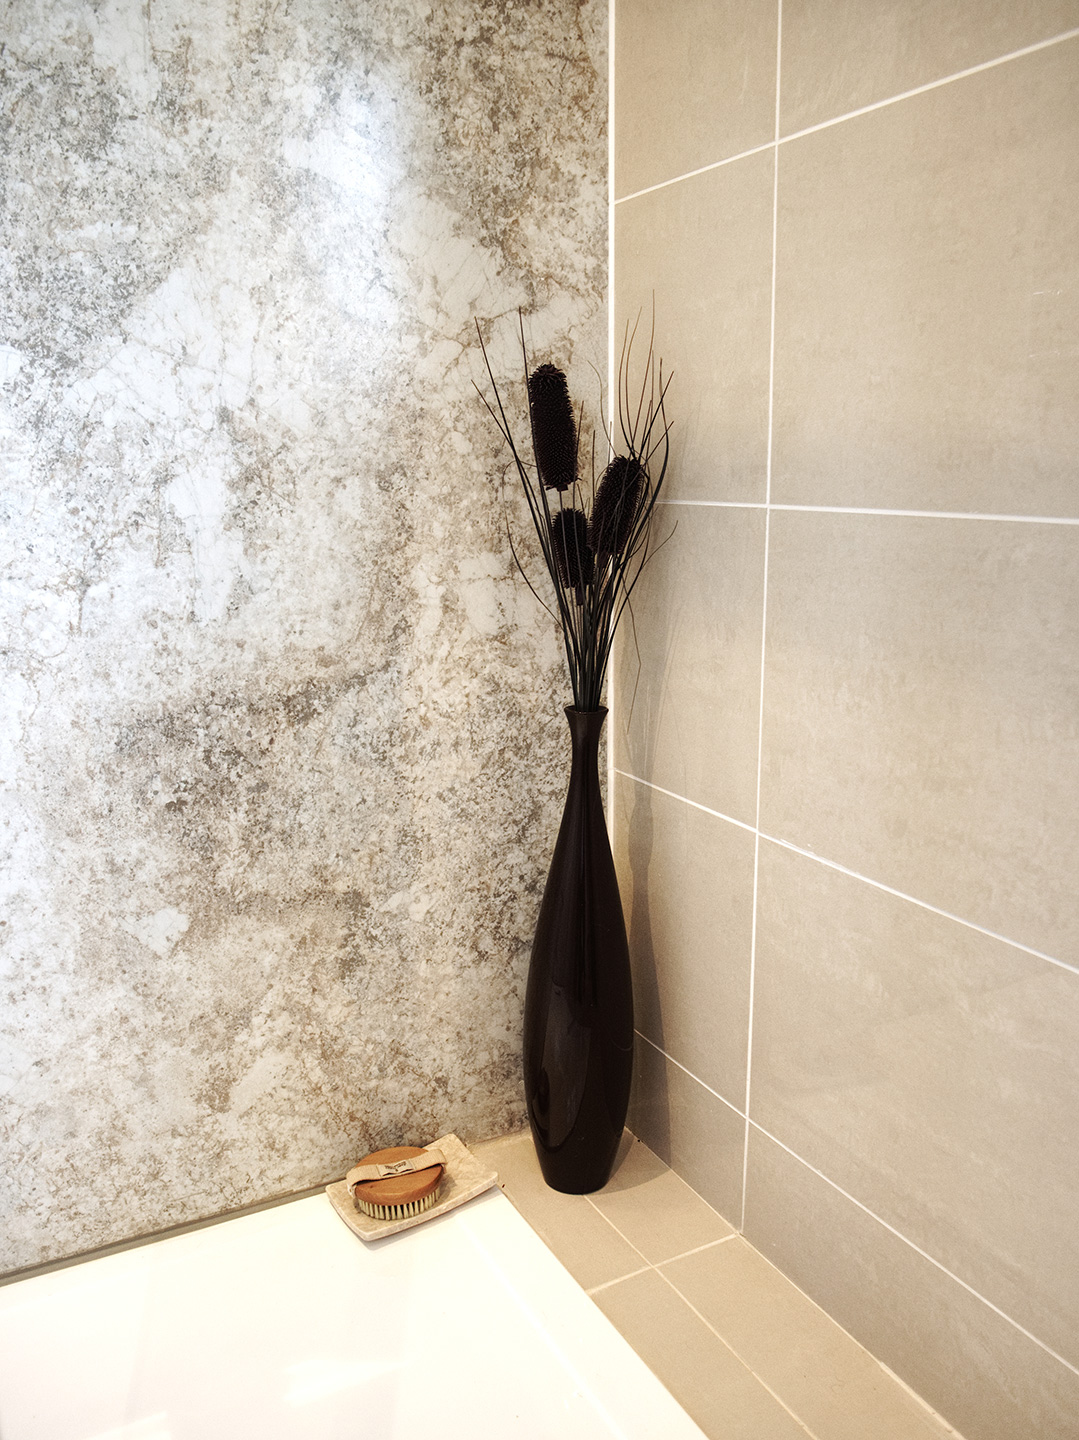 Bathroom remodel with walk-in shower - Cannadines